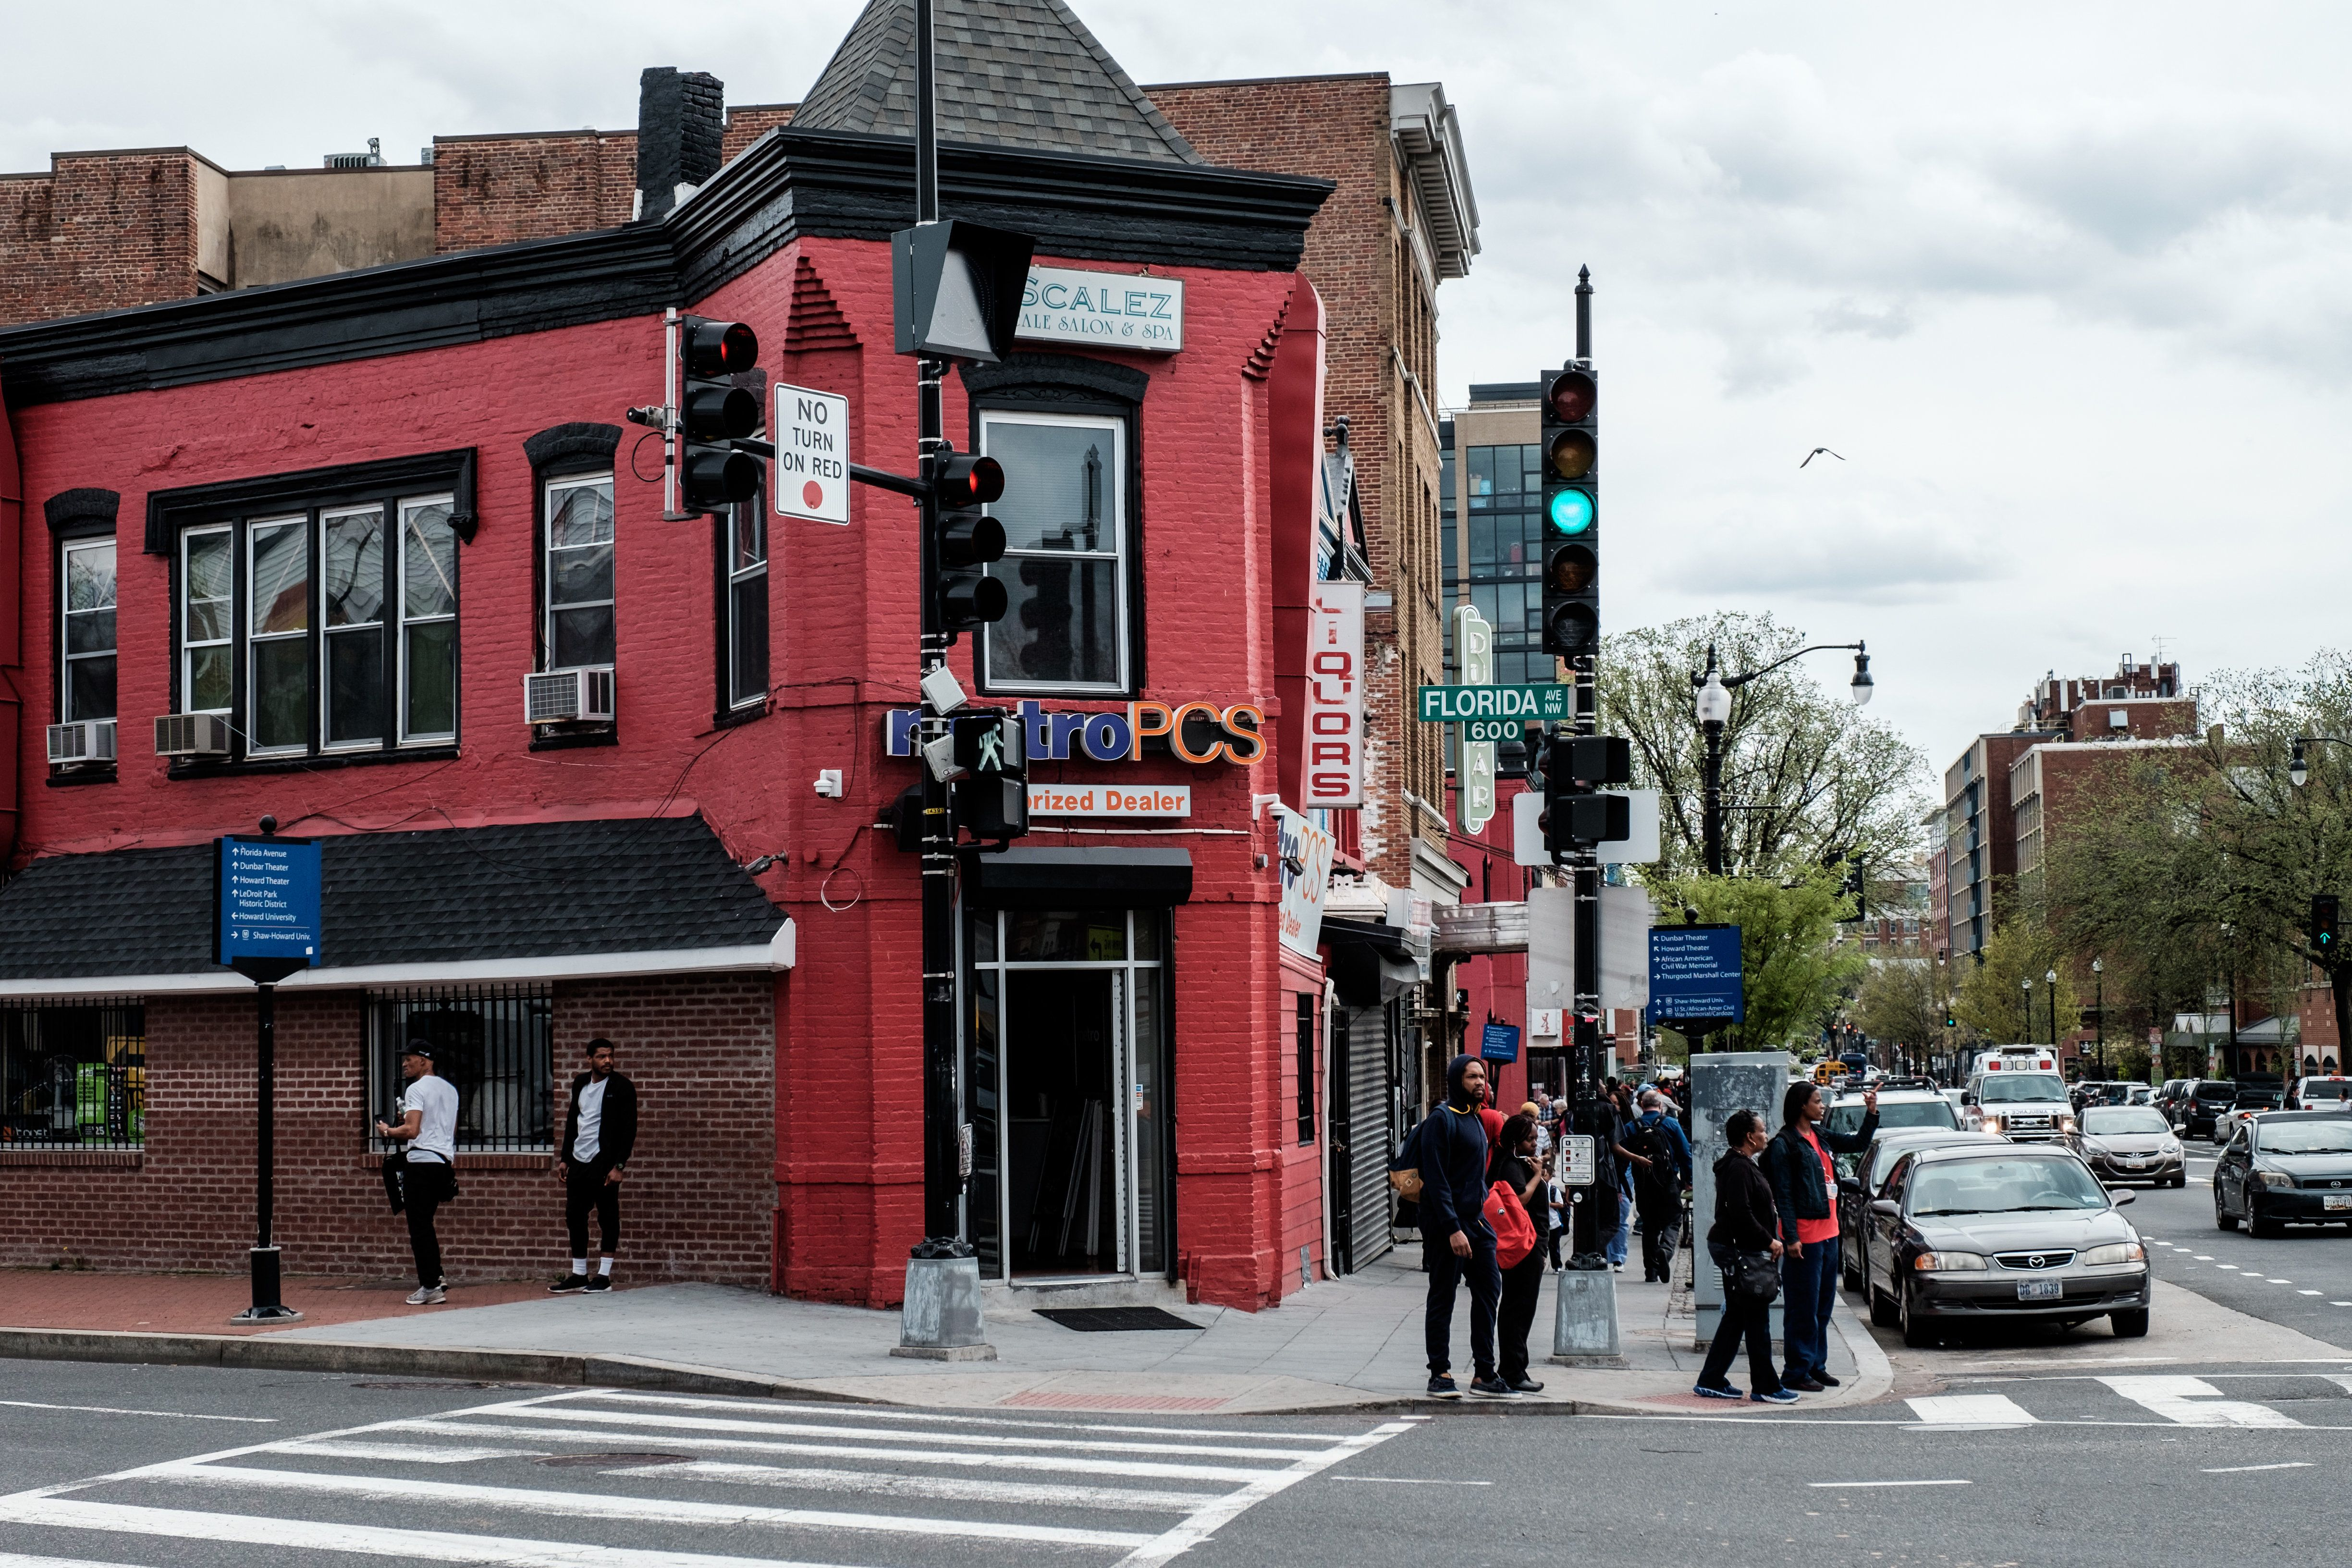 WASHINGTON, DC - APRIL 8: The Metro PCS store in Shaw has been known for playing its Go-Go music since 1995, until it was forced to turn off its music due to noise complaints from residents in the new luxurious apartments 'The Shay' one month ago on April 8, 2019 in Washington, DC. (Photo by Michael A. McCoy for The Washington Post via Getty Images)